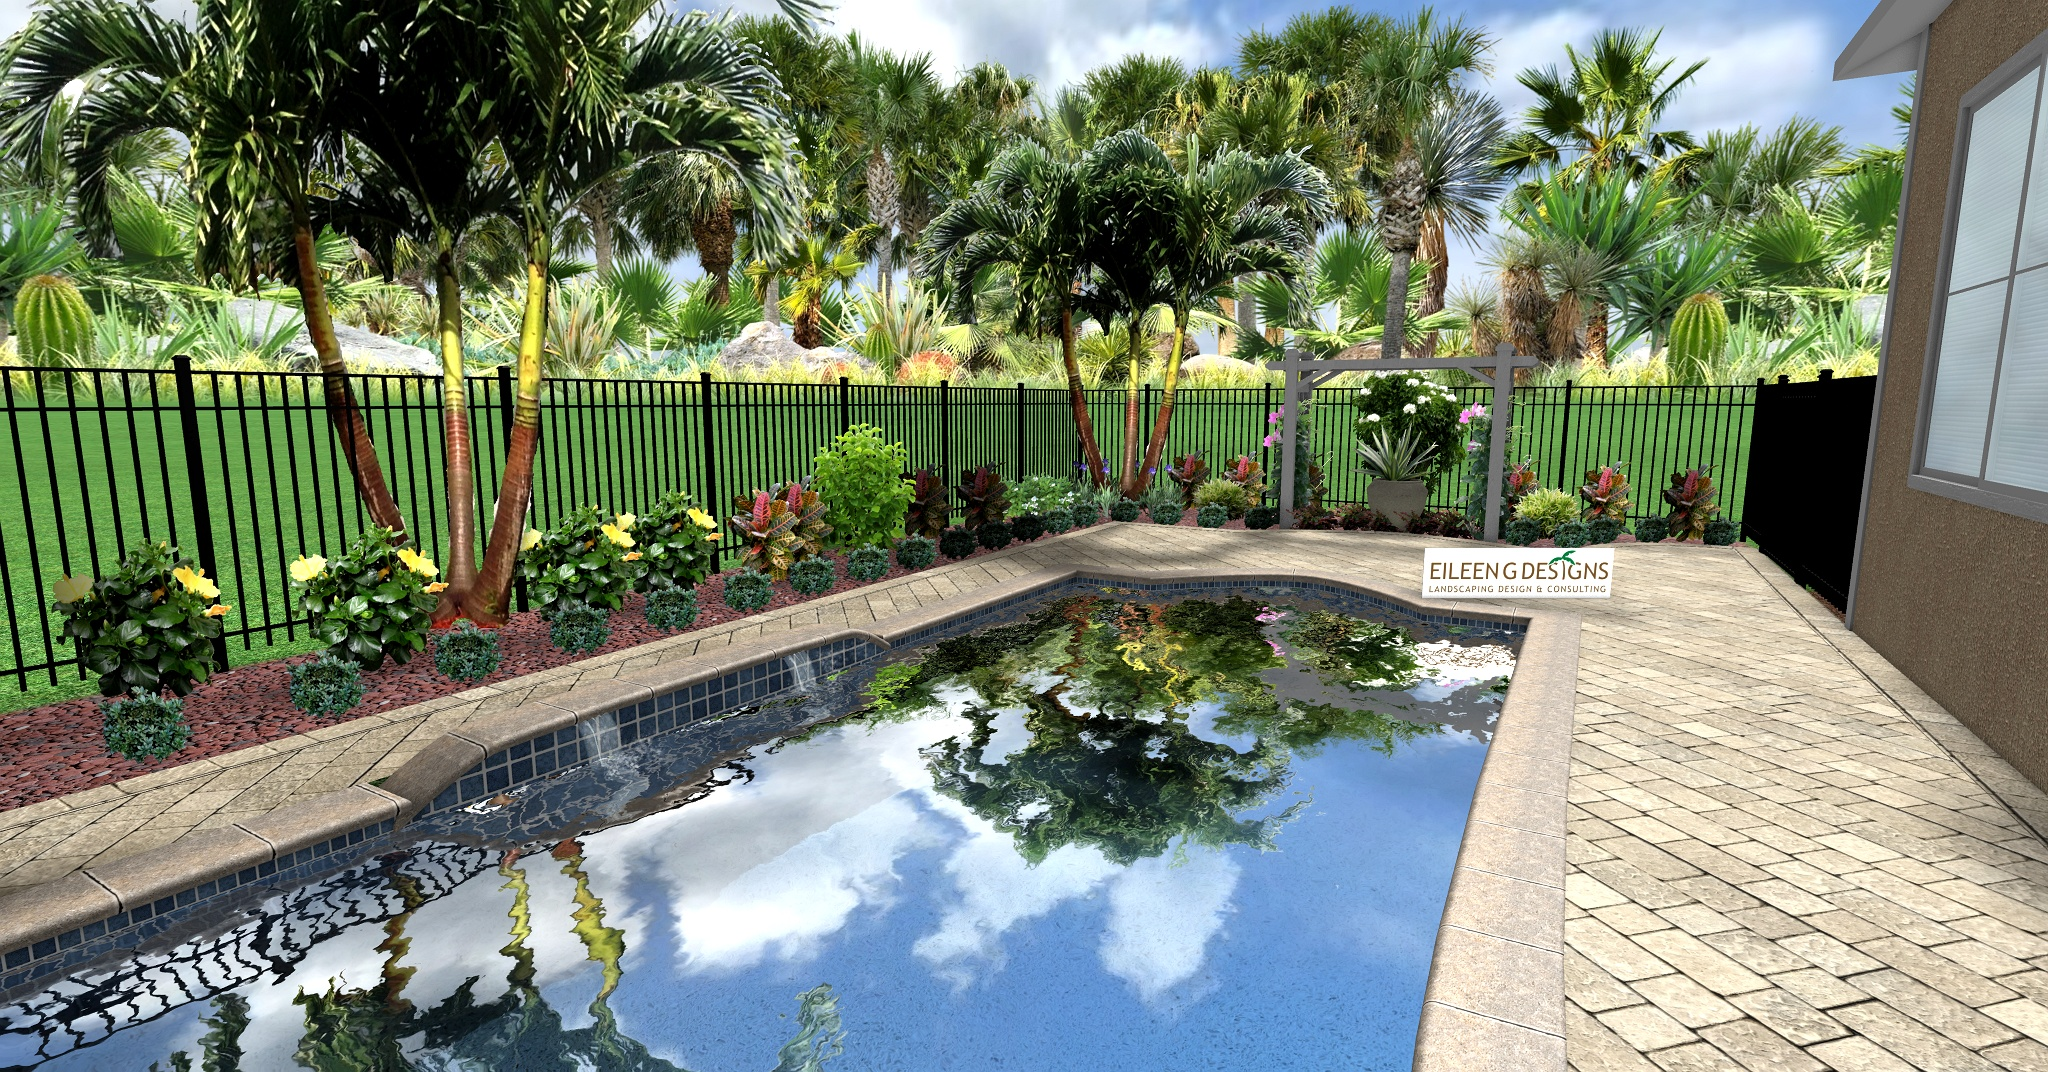 Tropical Landscaping And Paver Deck For Small Pool Area Eileen G